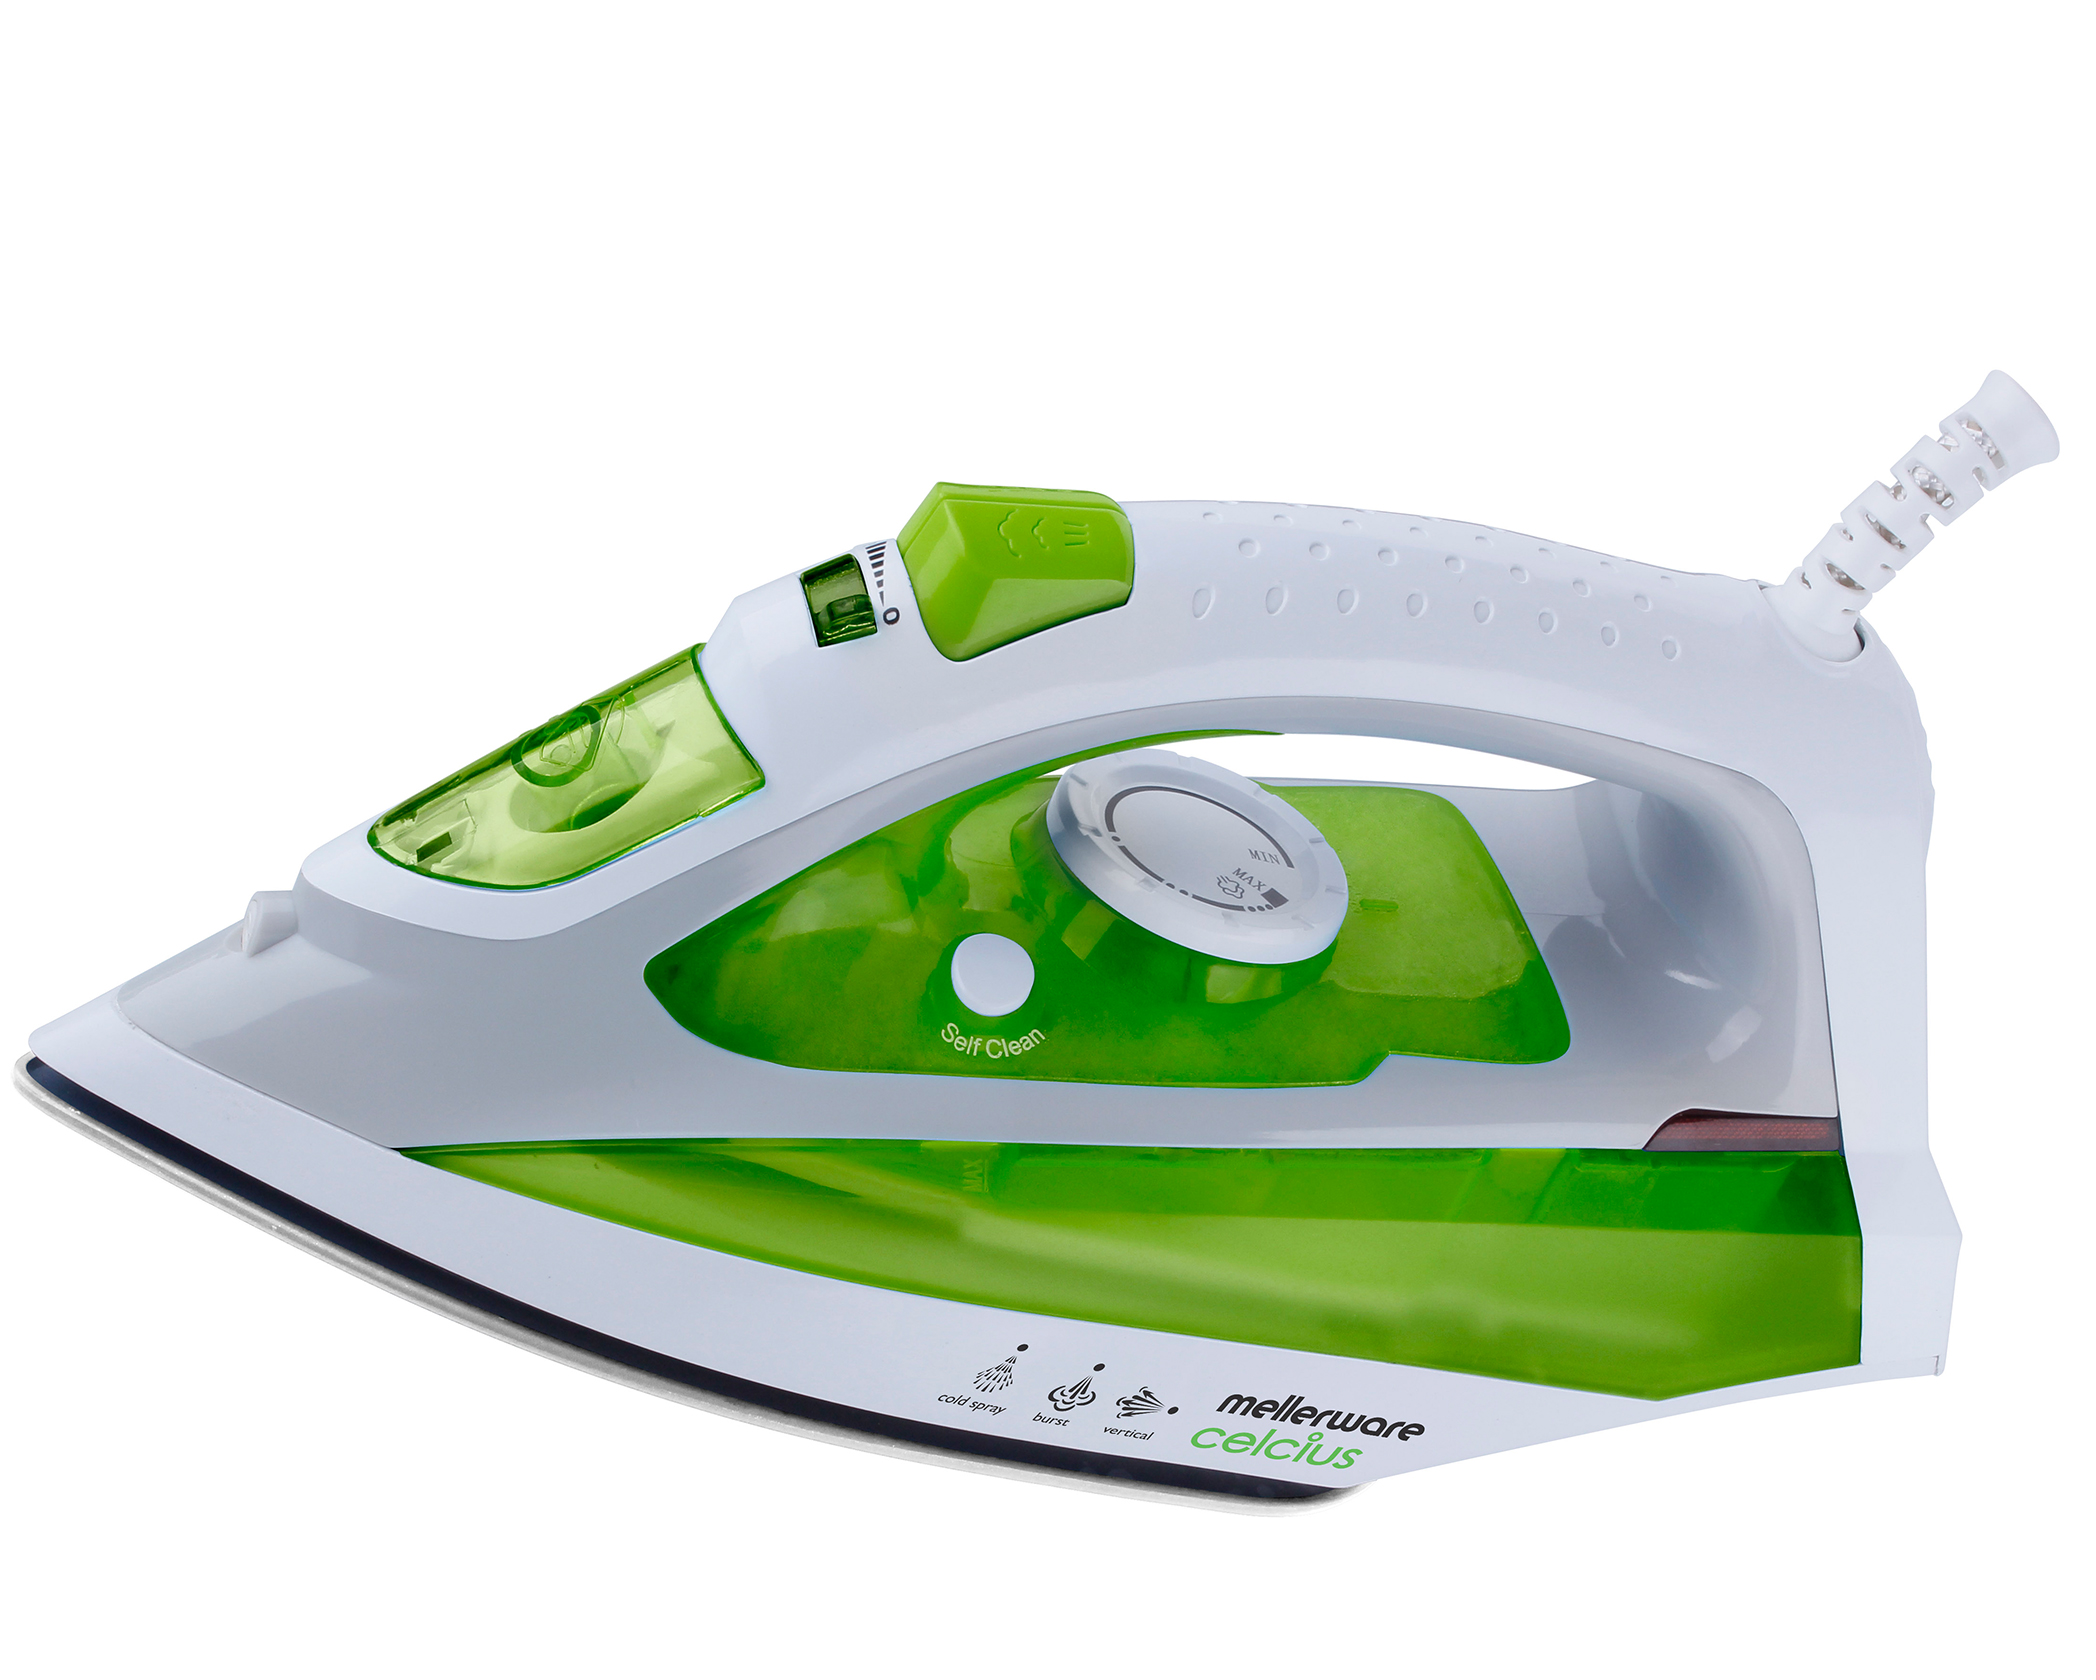 celcius-steam-iron-23180-large-3